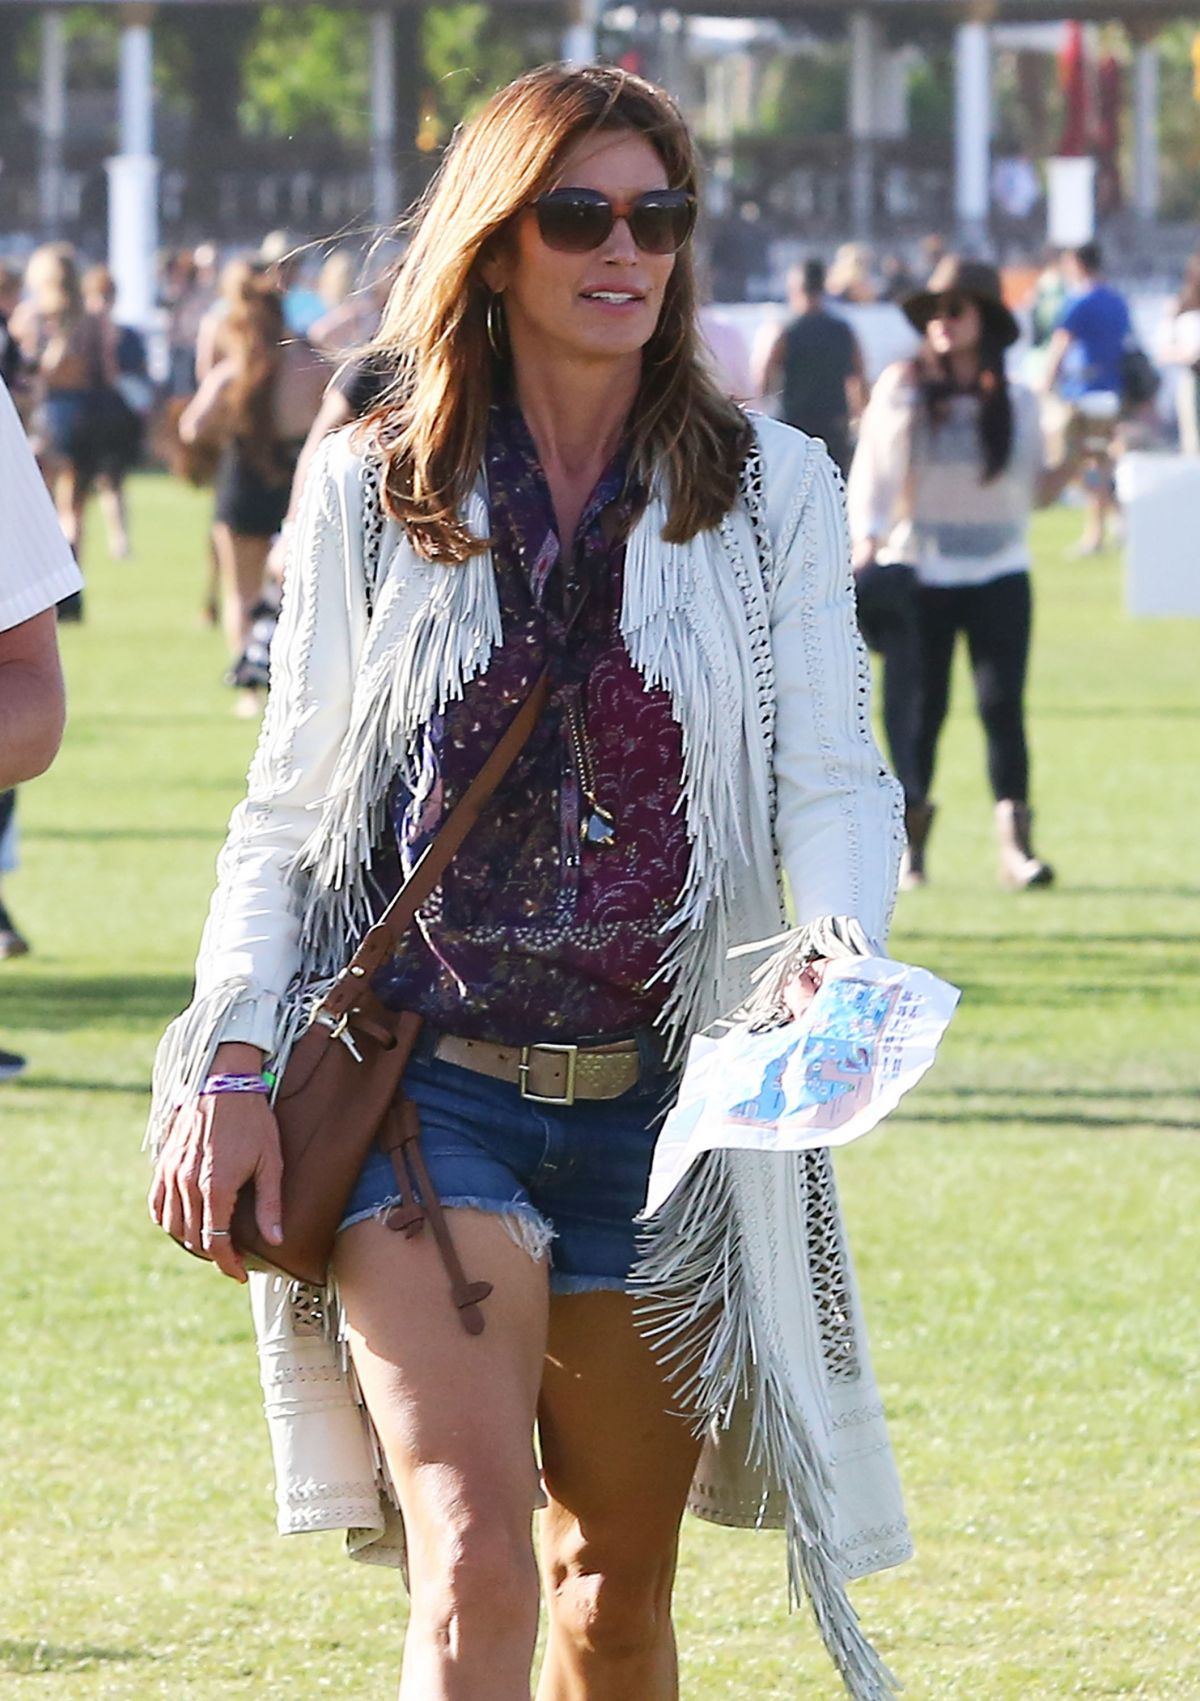 CINDY CRAWFORD at Coachella Valley Music and Arts Festival in Indio 04/15/2016